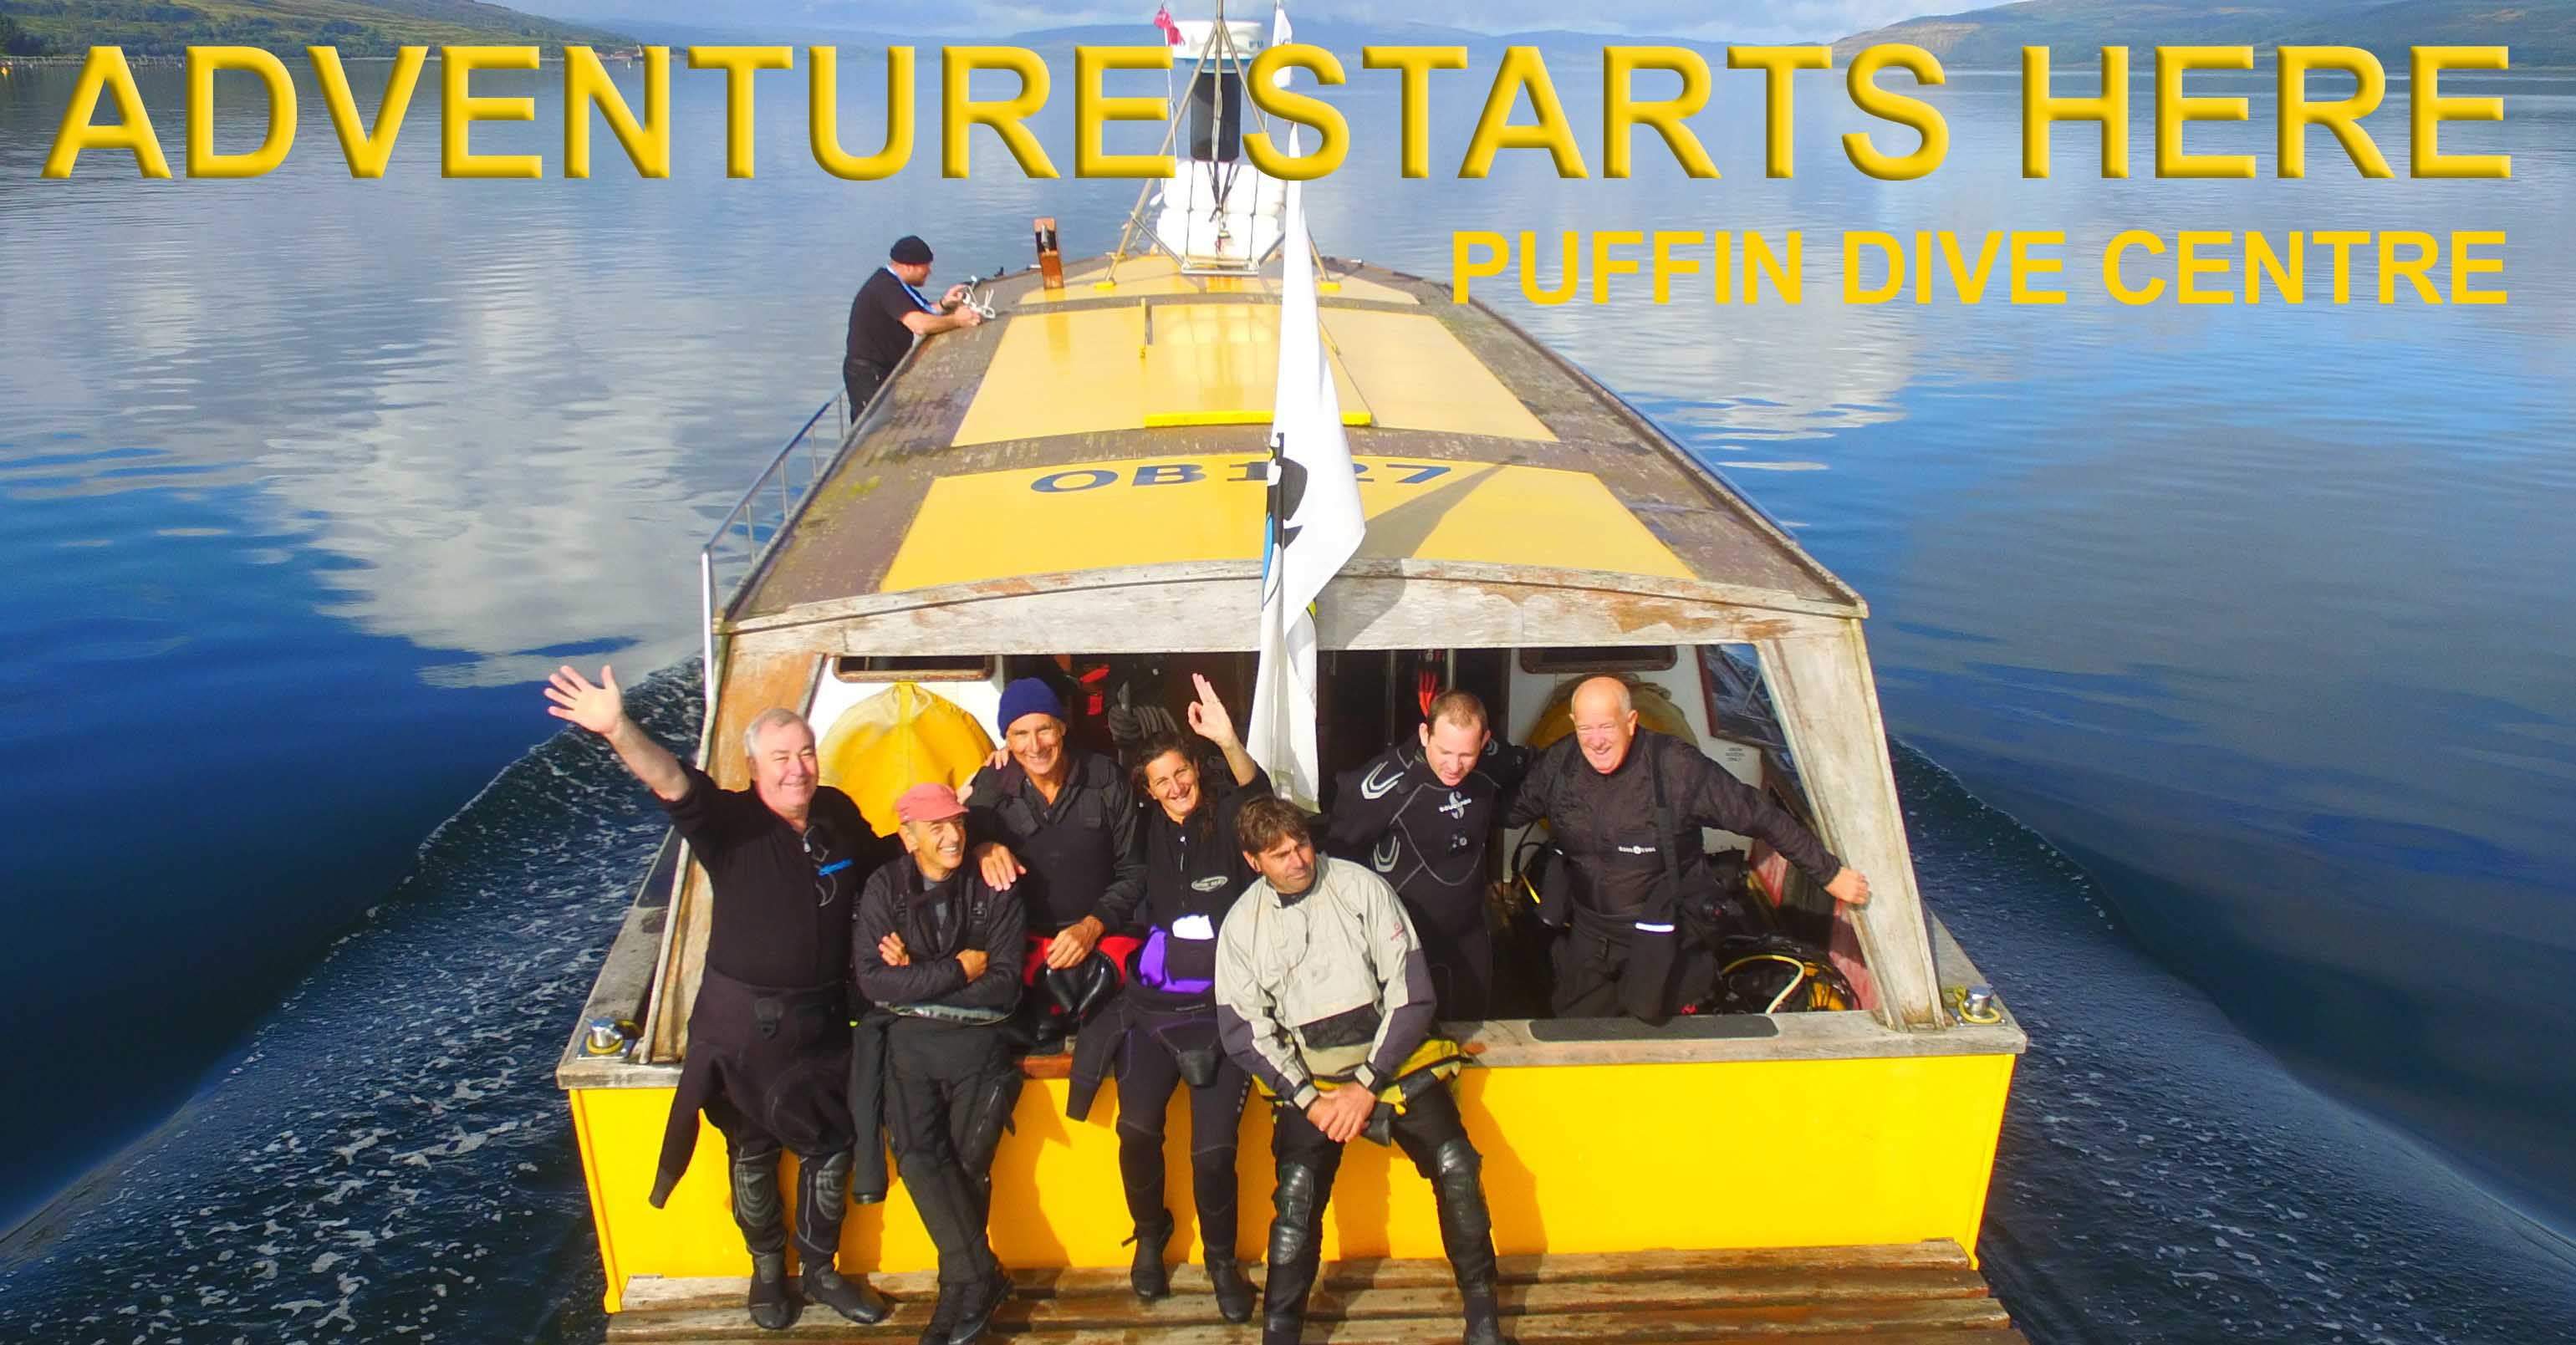 Boat Diving with Puffin Dive Centre - Adventure starts here!